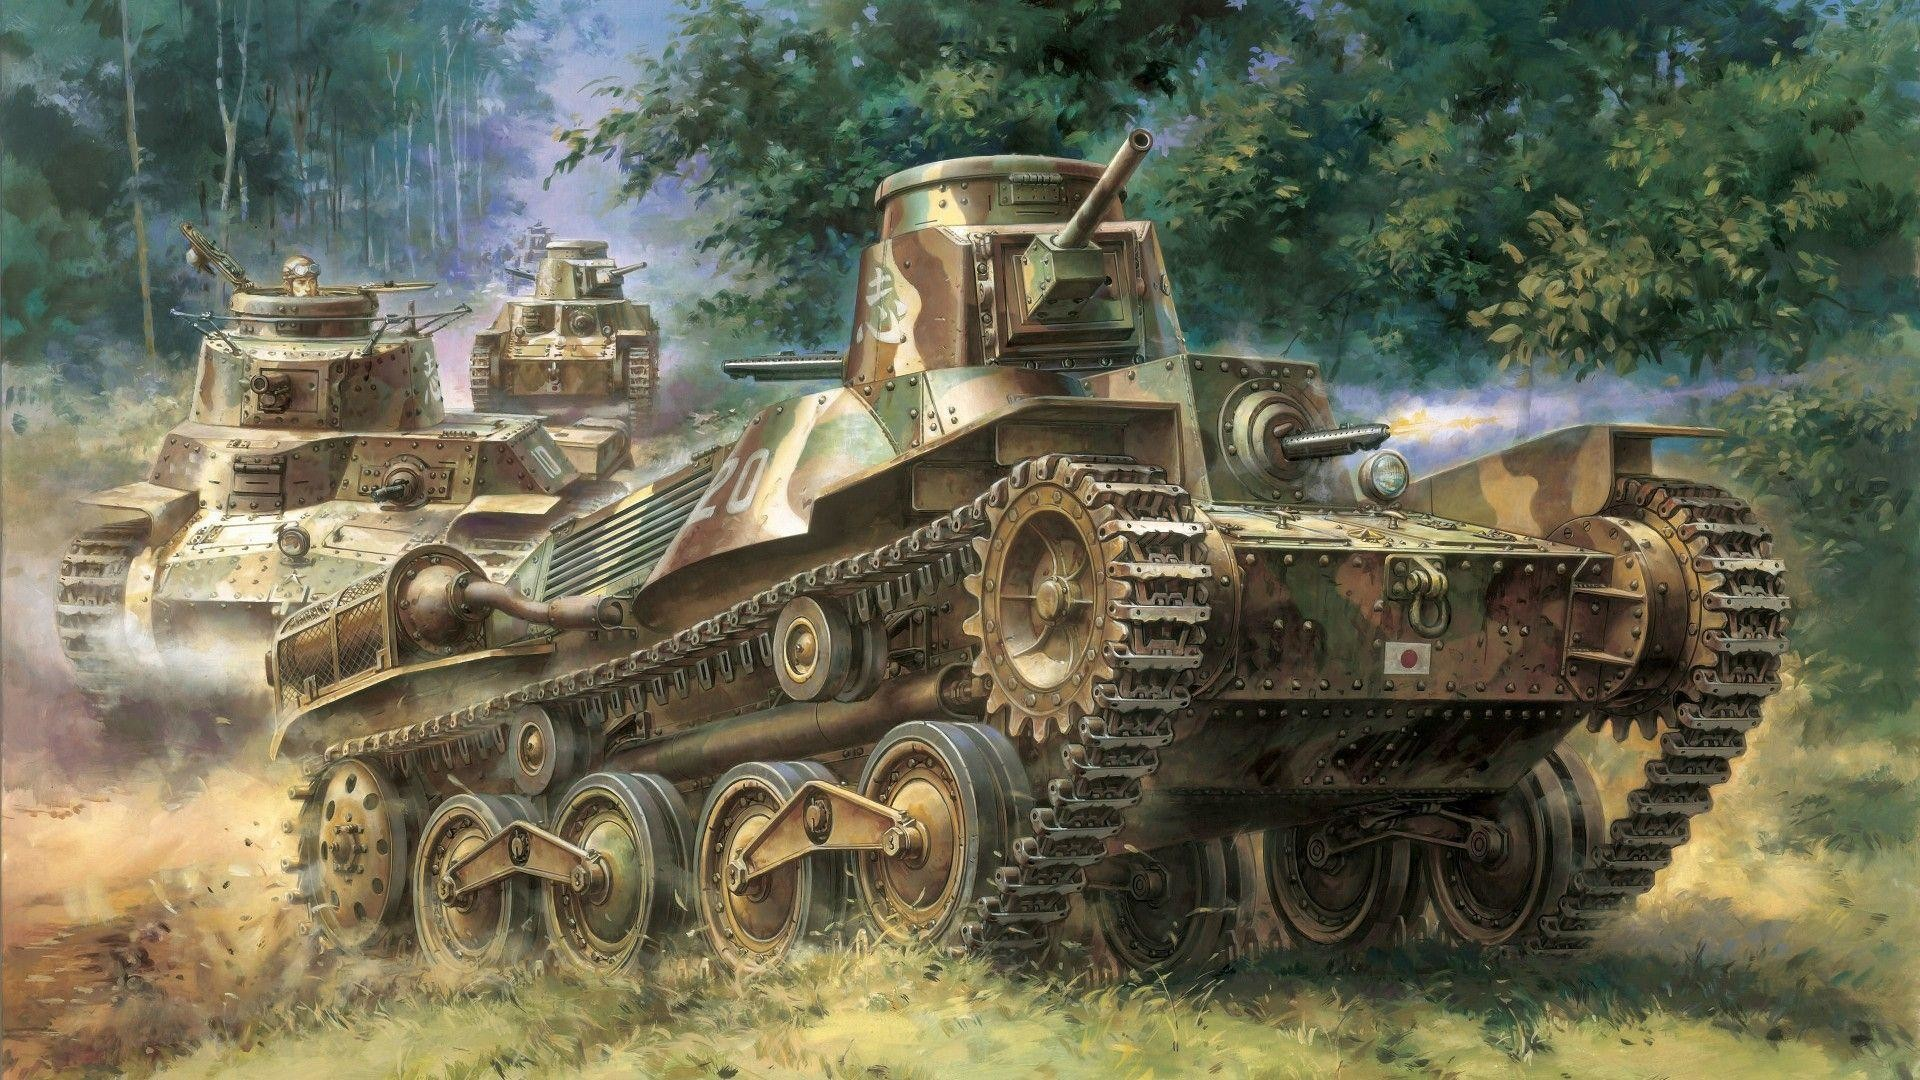 Ww2 Tank Wallpaper For Iphone – Epic Wallpaperz